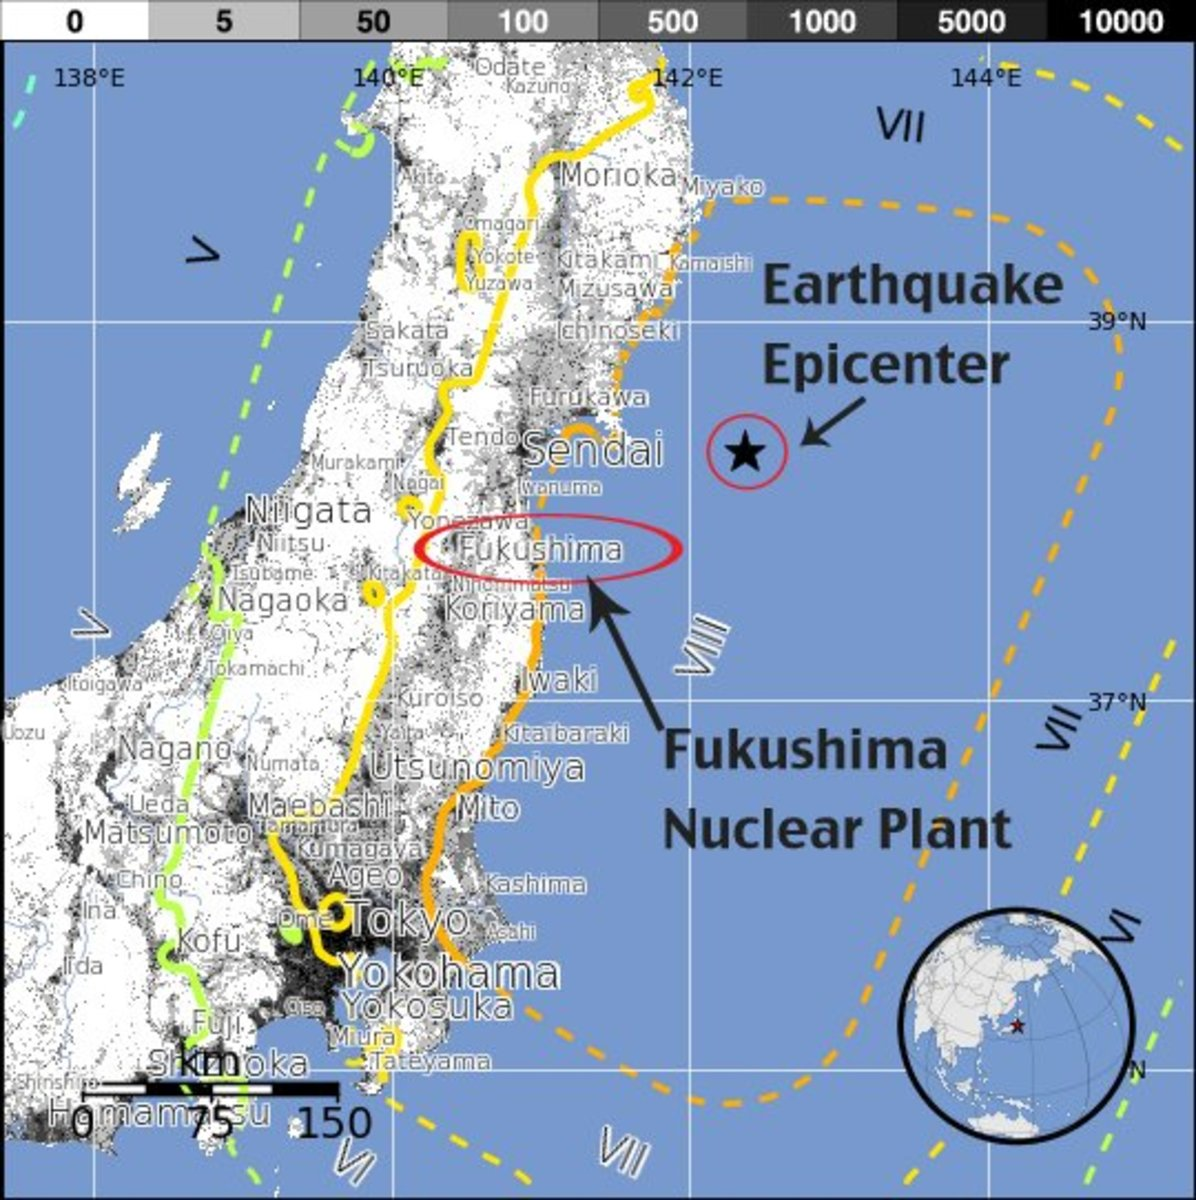 The approximate location of the Fukushima to the Earthquake Epicenter (Edigitales.org).